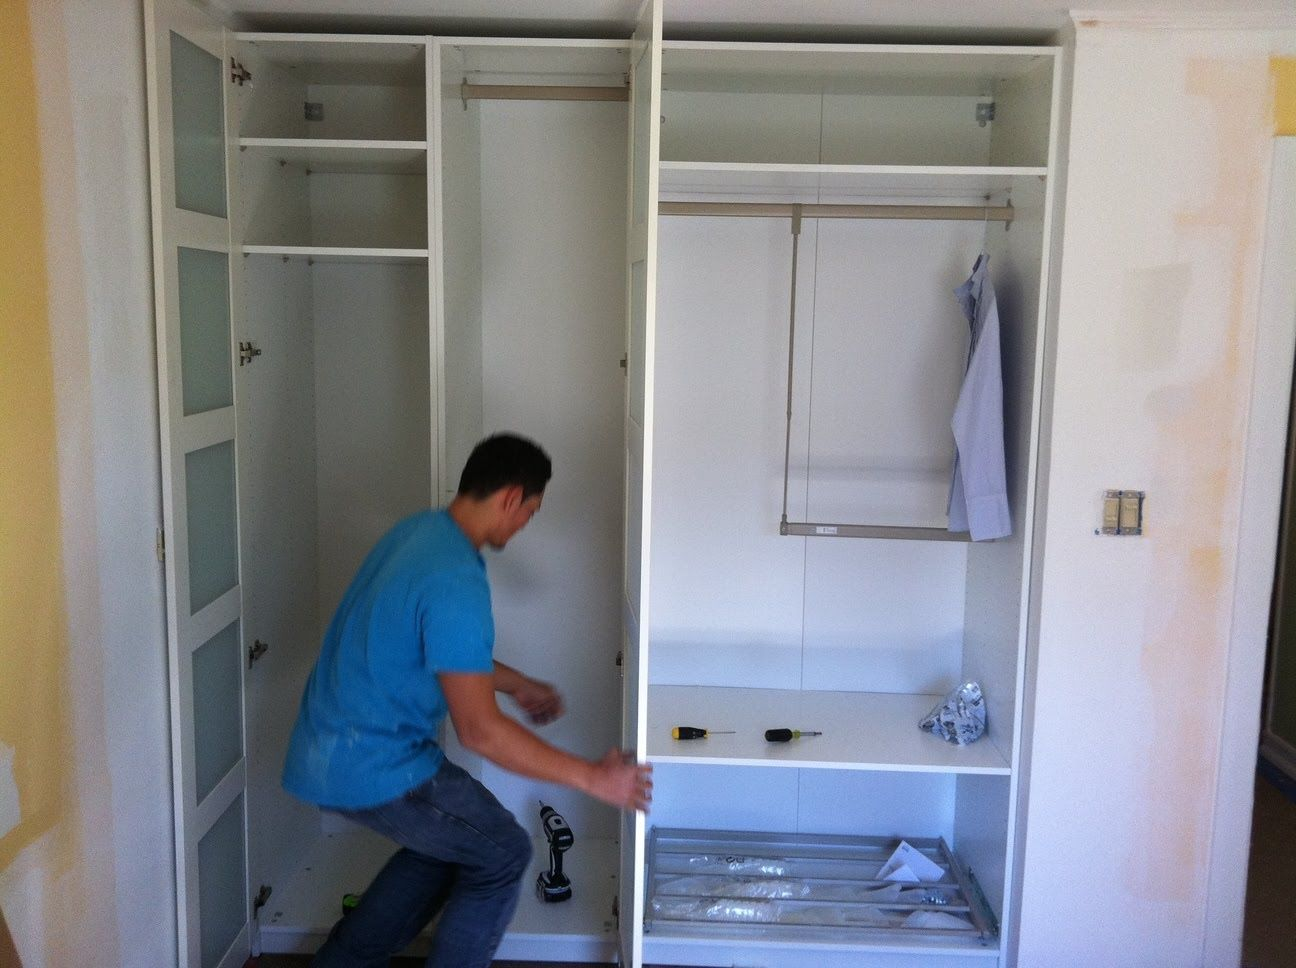 For Custom Look Closet Organization System   Insert Pre Assembled Pax  Wardrobe Frames Into The Cove